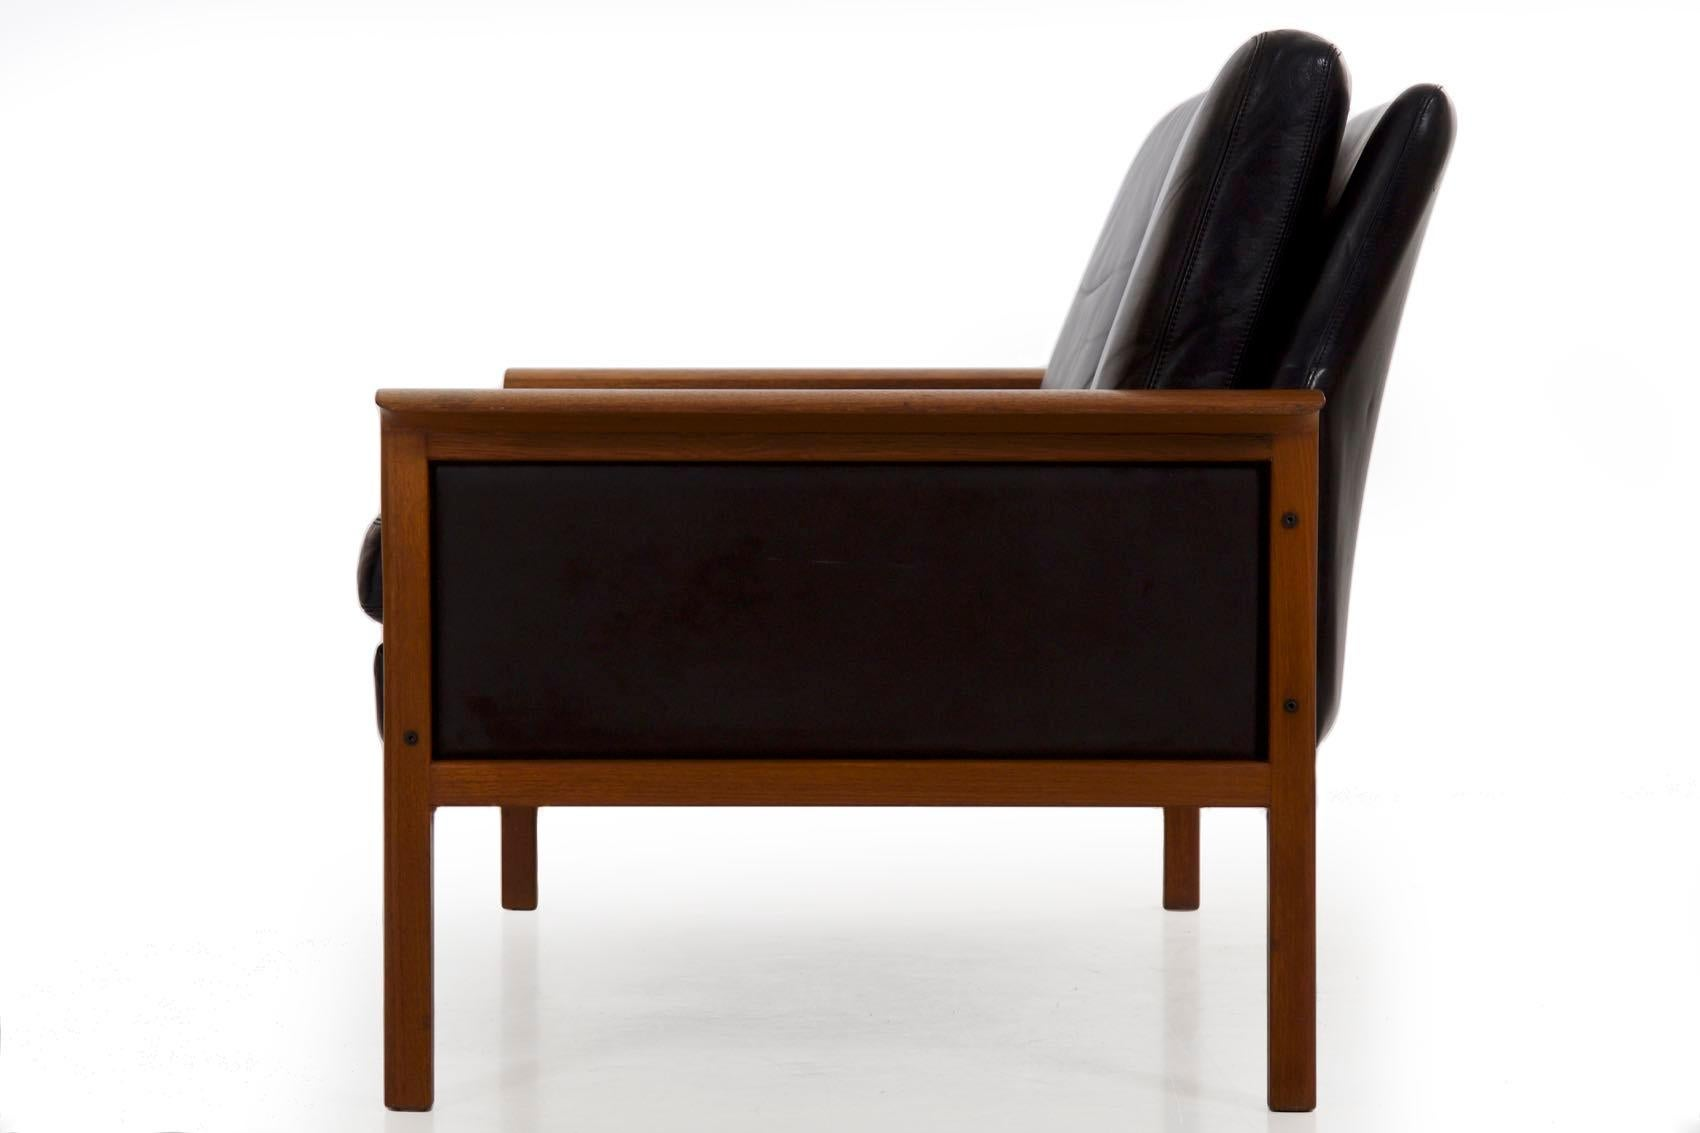 Hans olsen danish mid century modern leather loveseat sofa for sale at 1stdibs